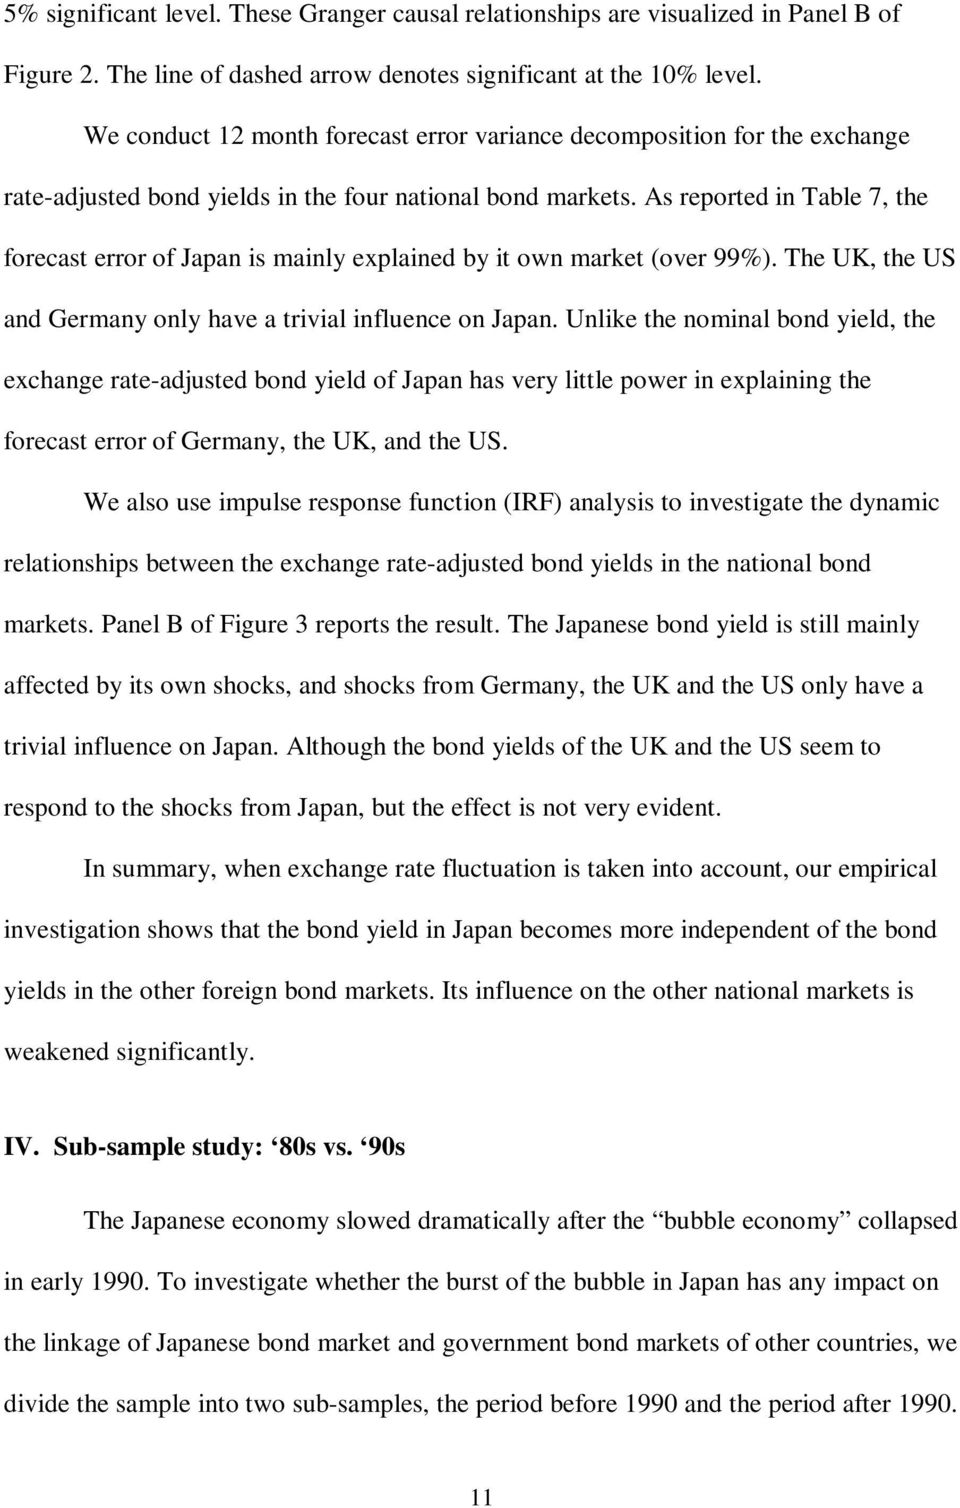 As reported in Table 7, the forecast error of Japan is mainly explained by it own market (over 99%). The UK, the US and Germany only have a trivial influence on Japan.